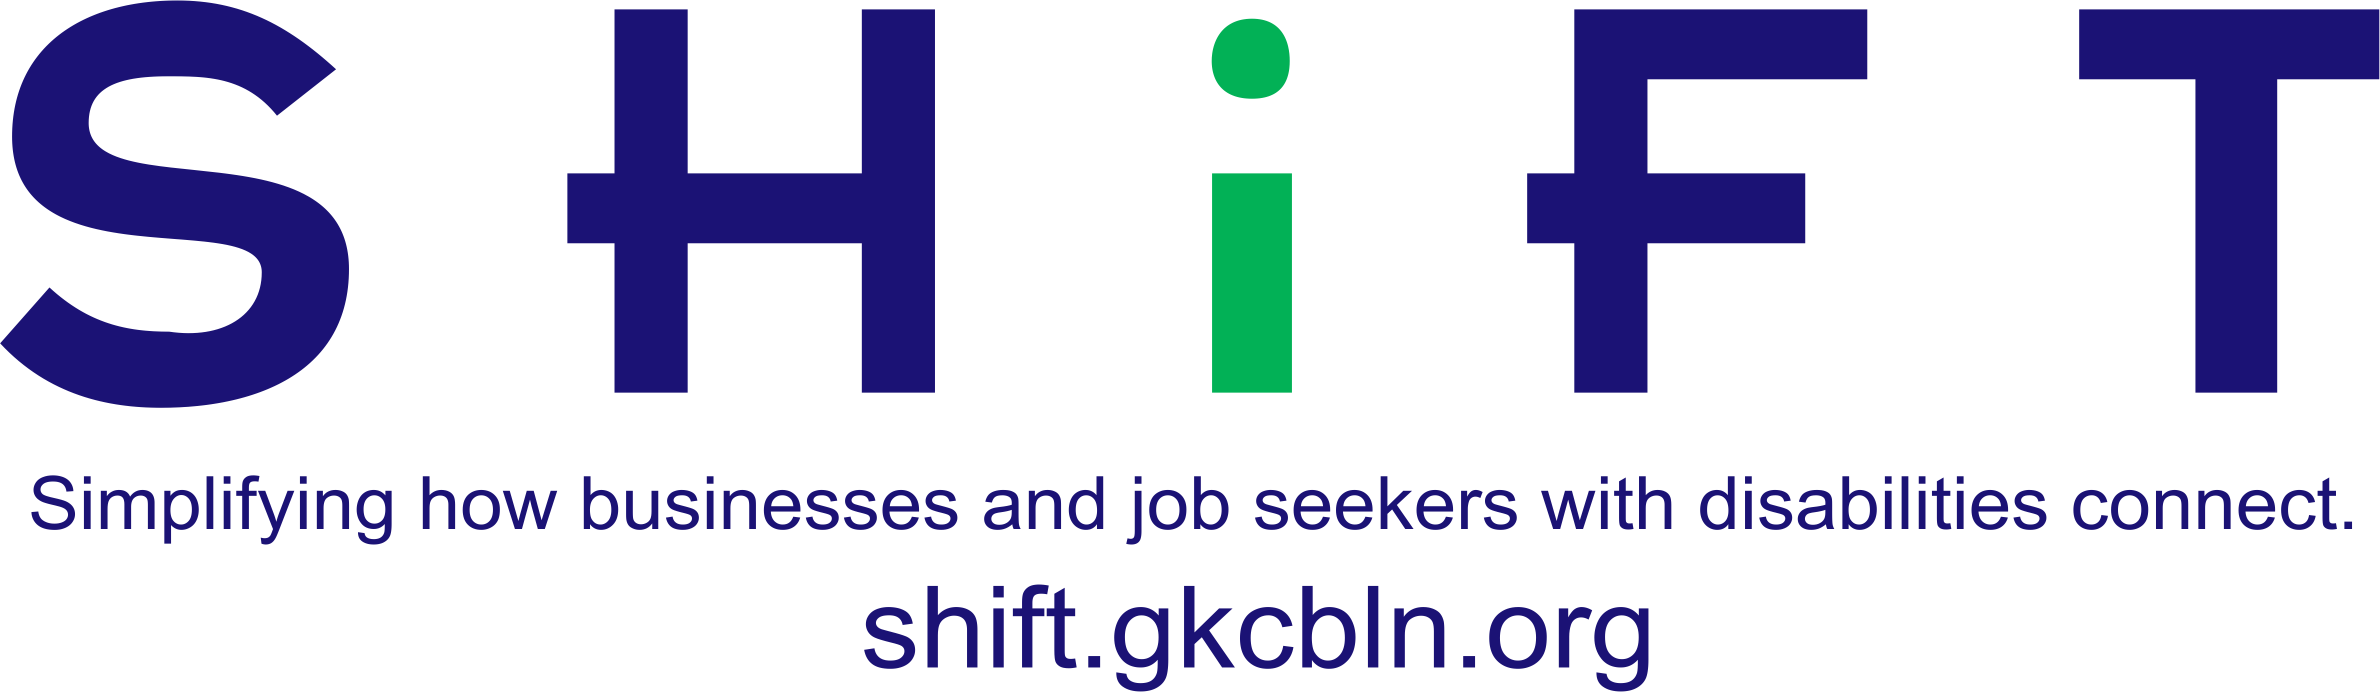 SHiFT company logo that reads: SHiFT, Simplifying how businesses and job seekers with disabilities connect. Our web address is shift.gkcbln.org.